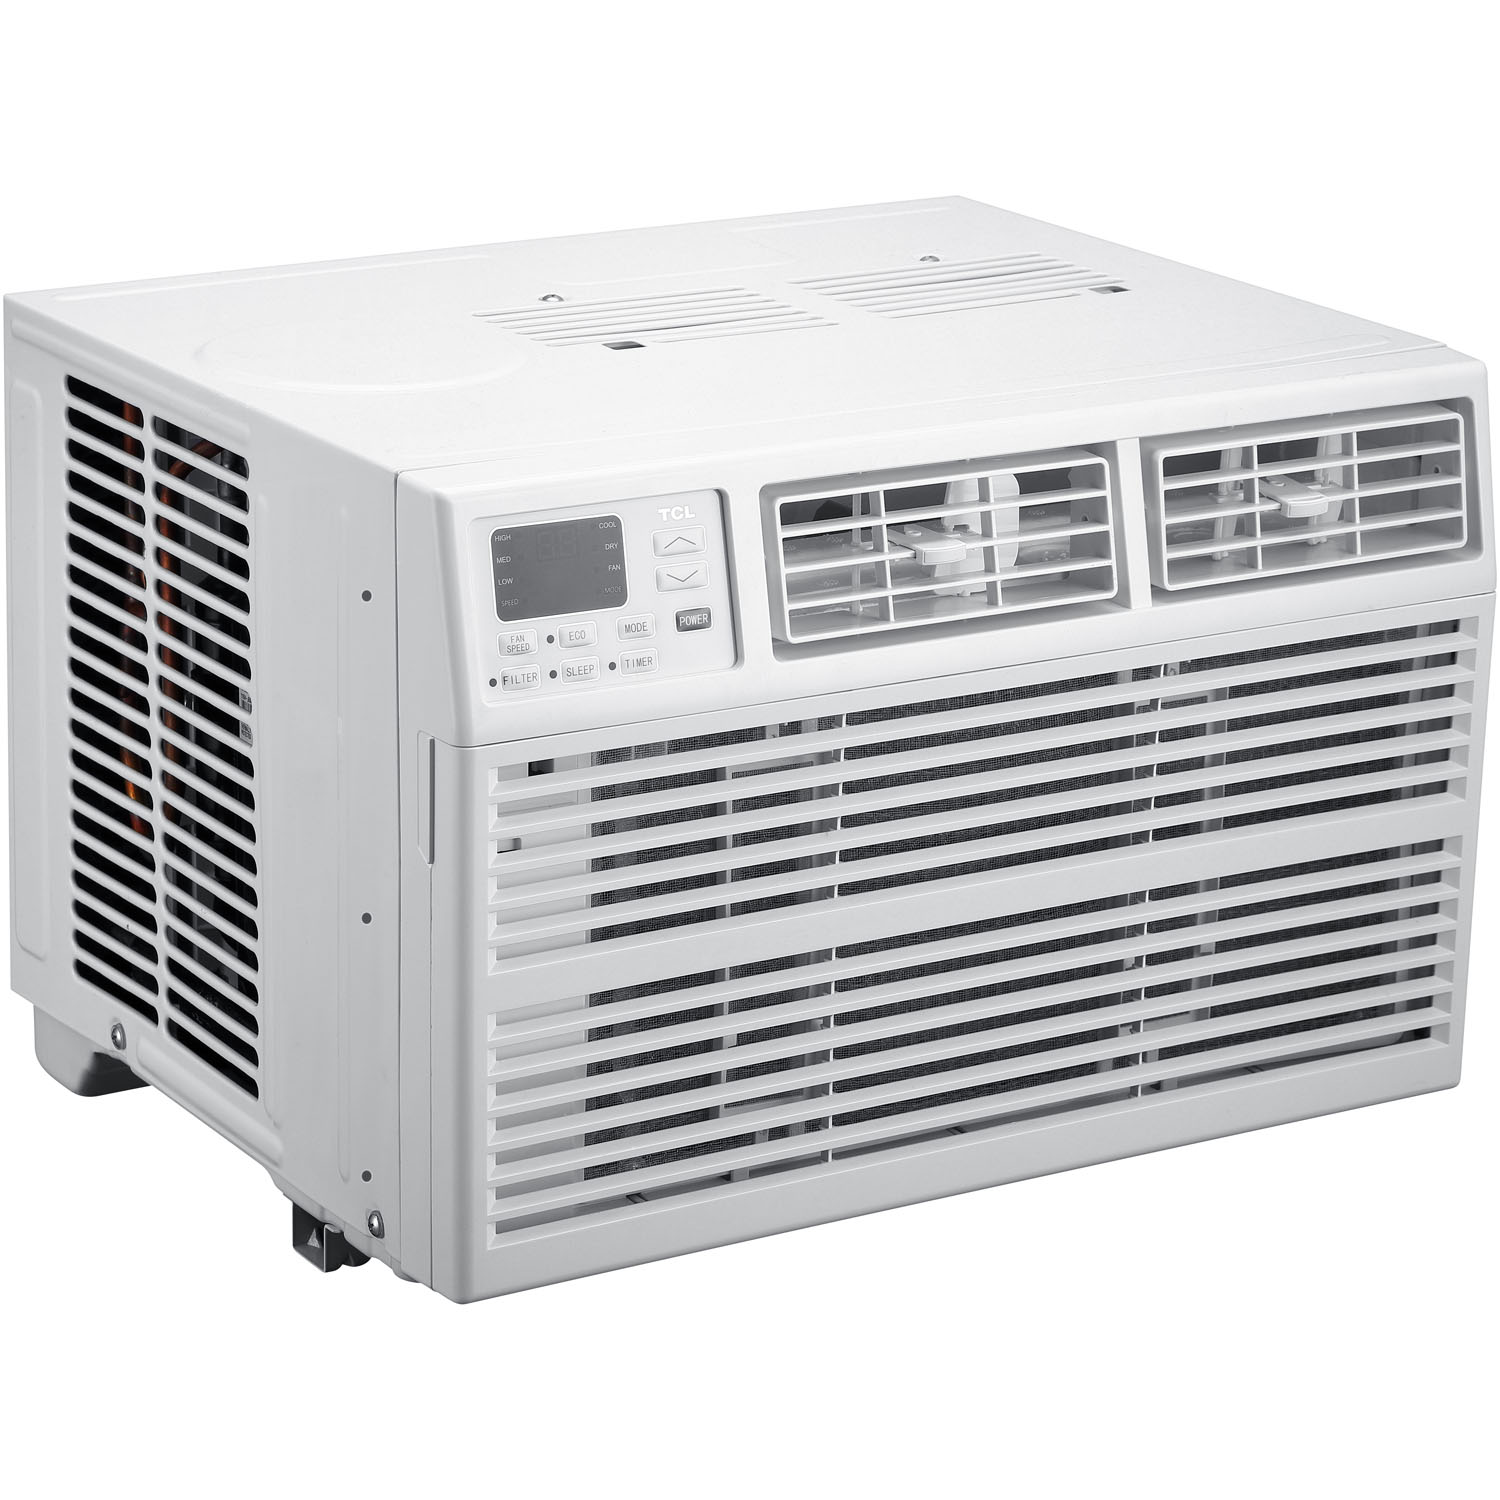 Tcl energy star 15 000 btu 115v window mounted air for 11000 btu window air conditioner